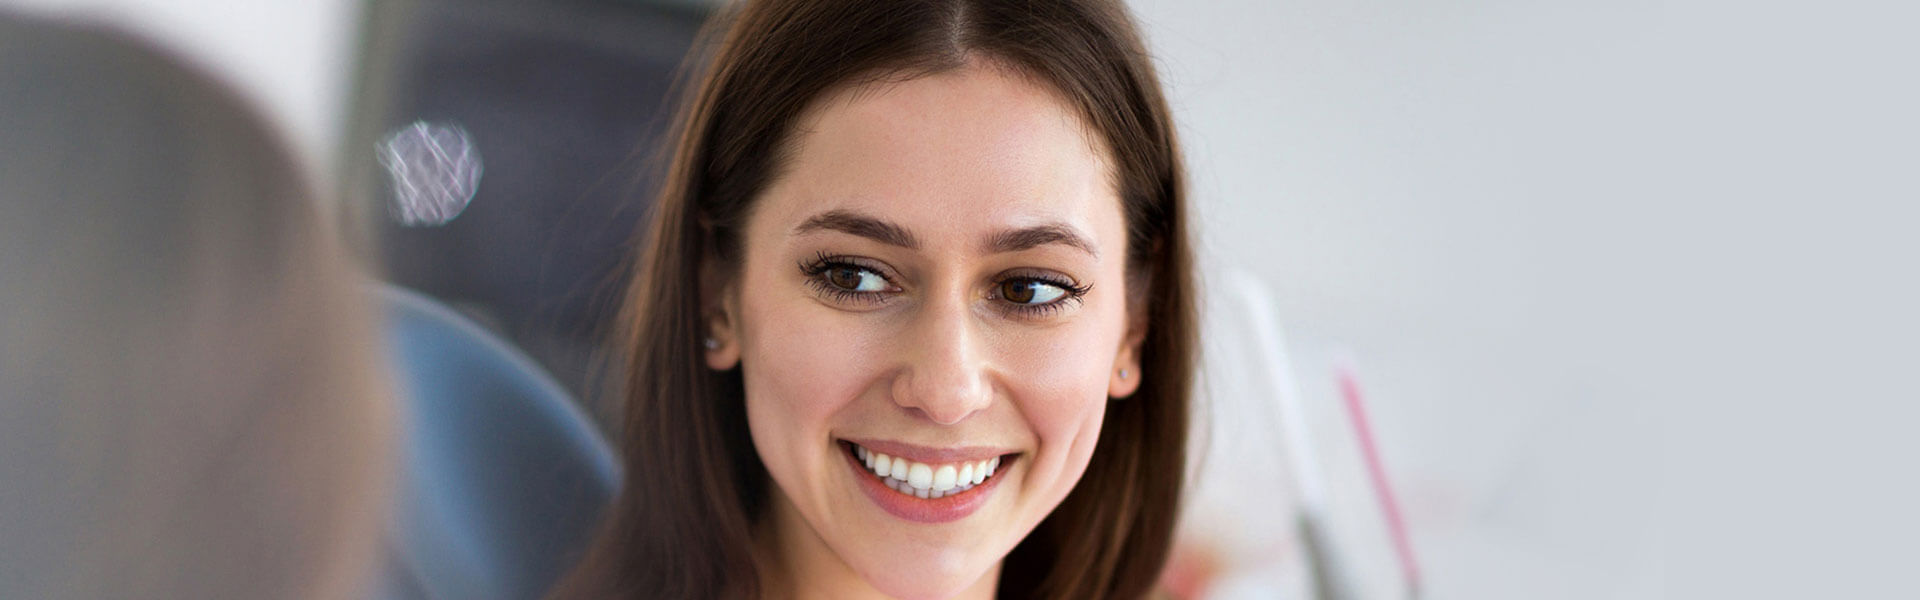 What You Should Know Before Using Teeth Whitening Strips